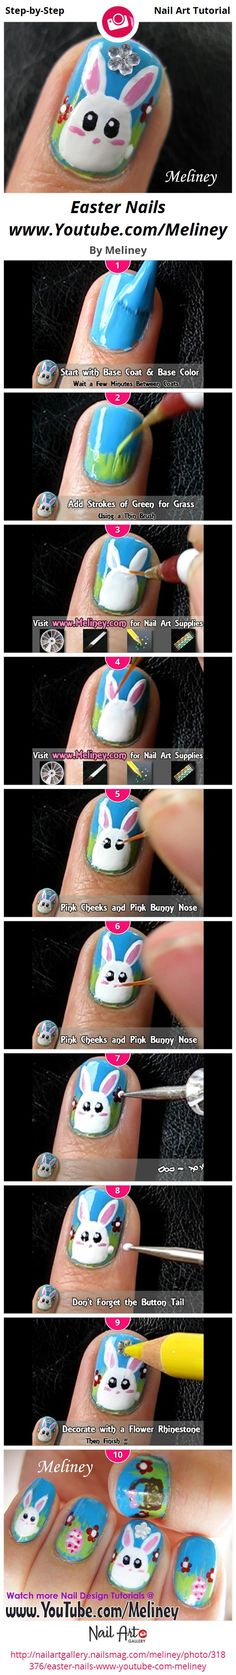 Easter Nails www.Youtube.com/Meliney by Meliney - Nail Art Gallery Step-by-Step Tutorials nailartgallery.nailsmag.com by Nails Magazine www.nailsmag.com #nailart